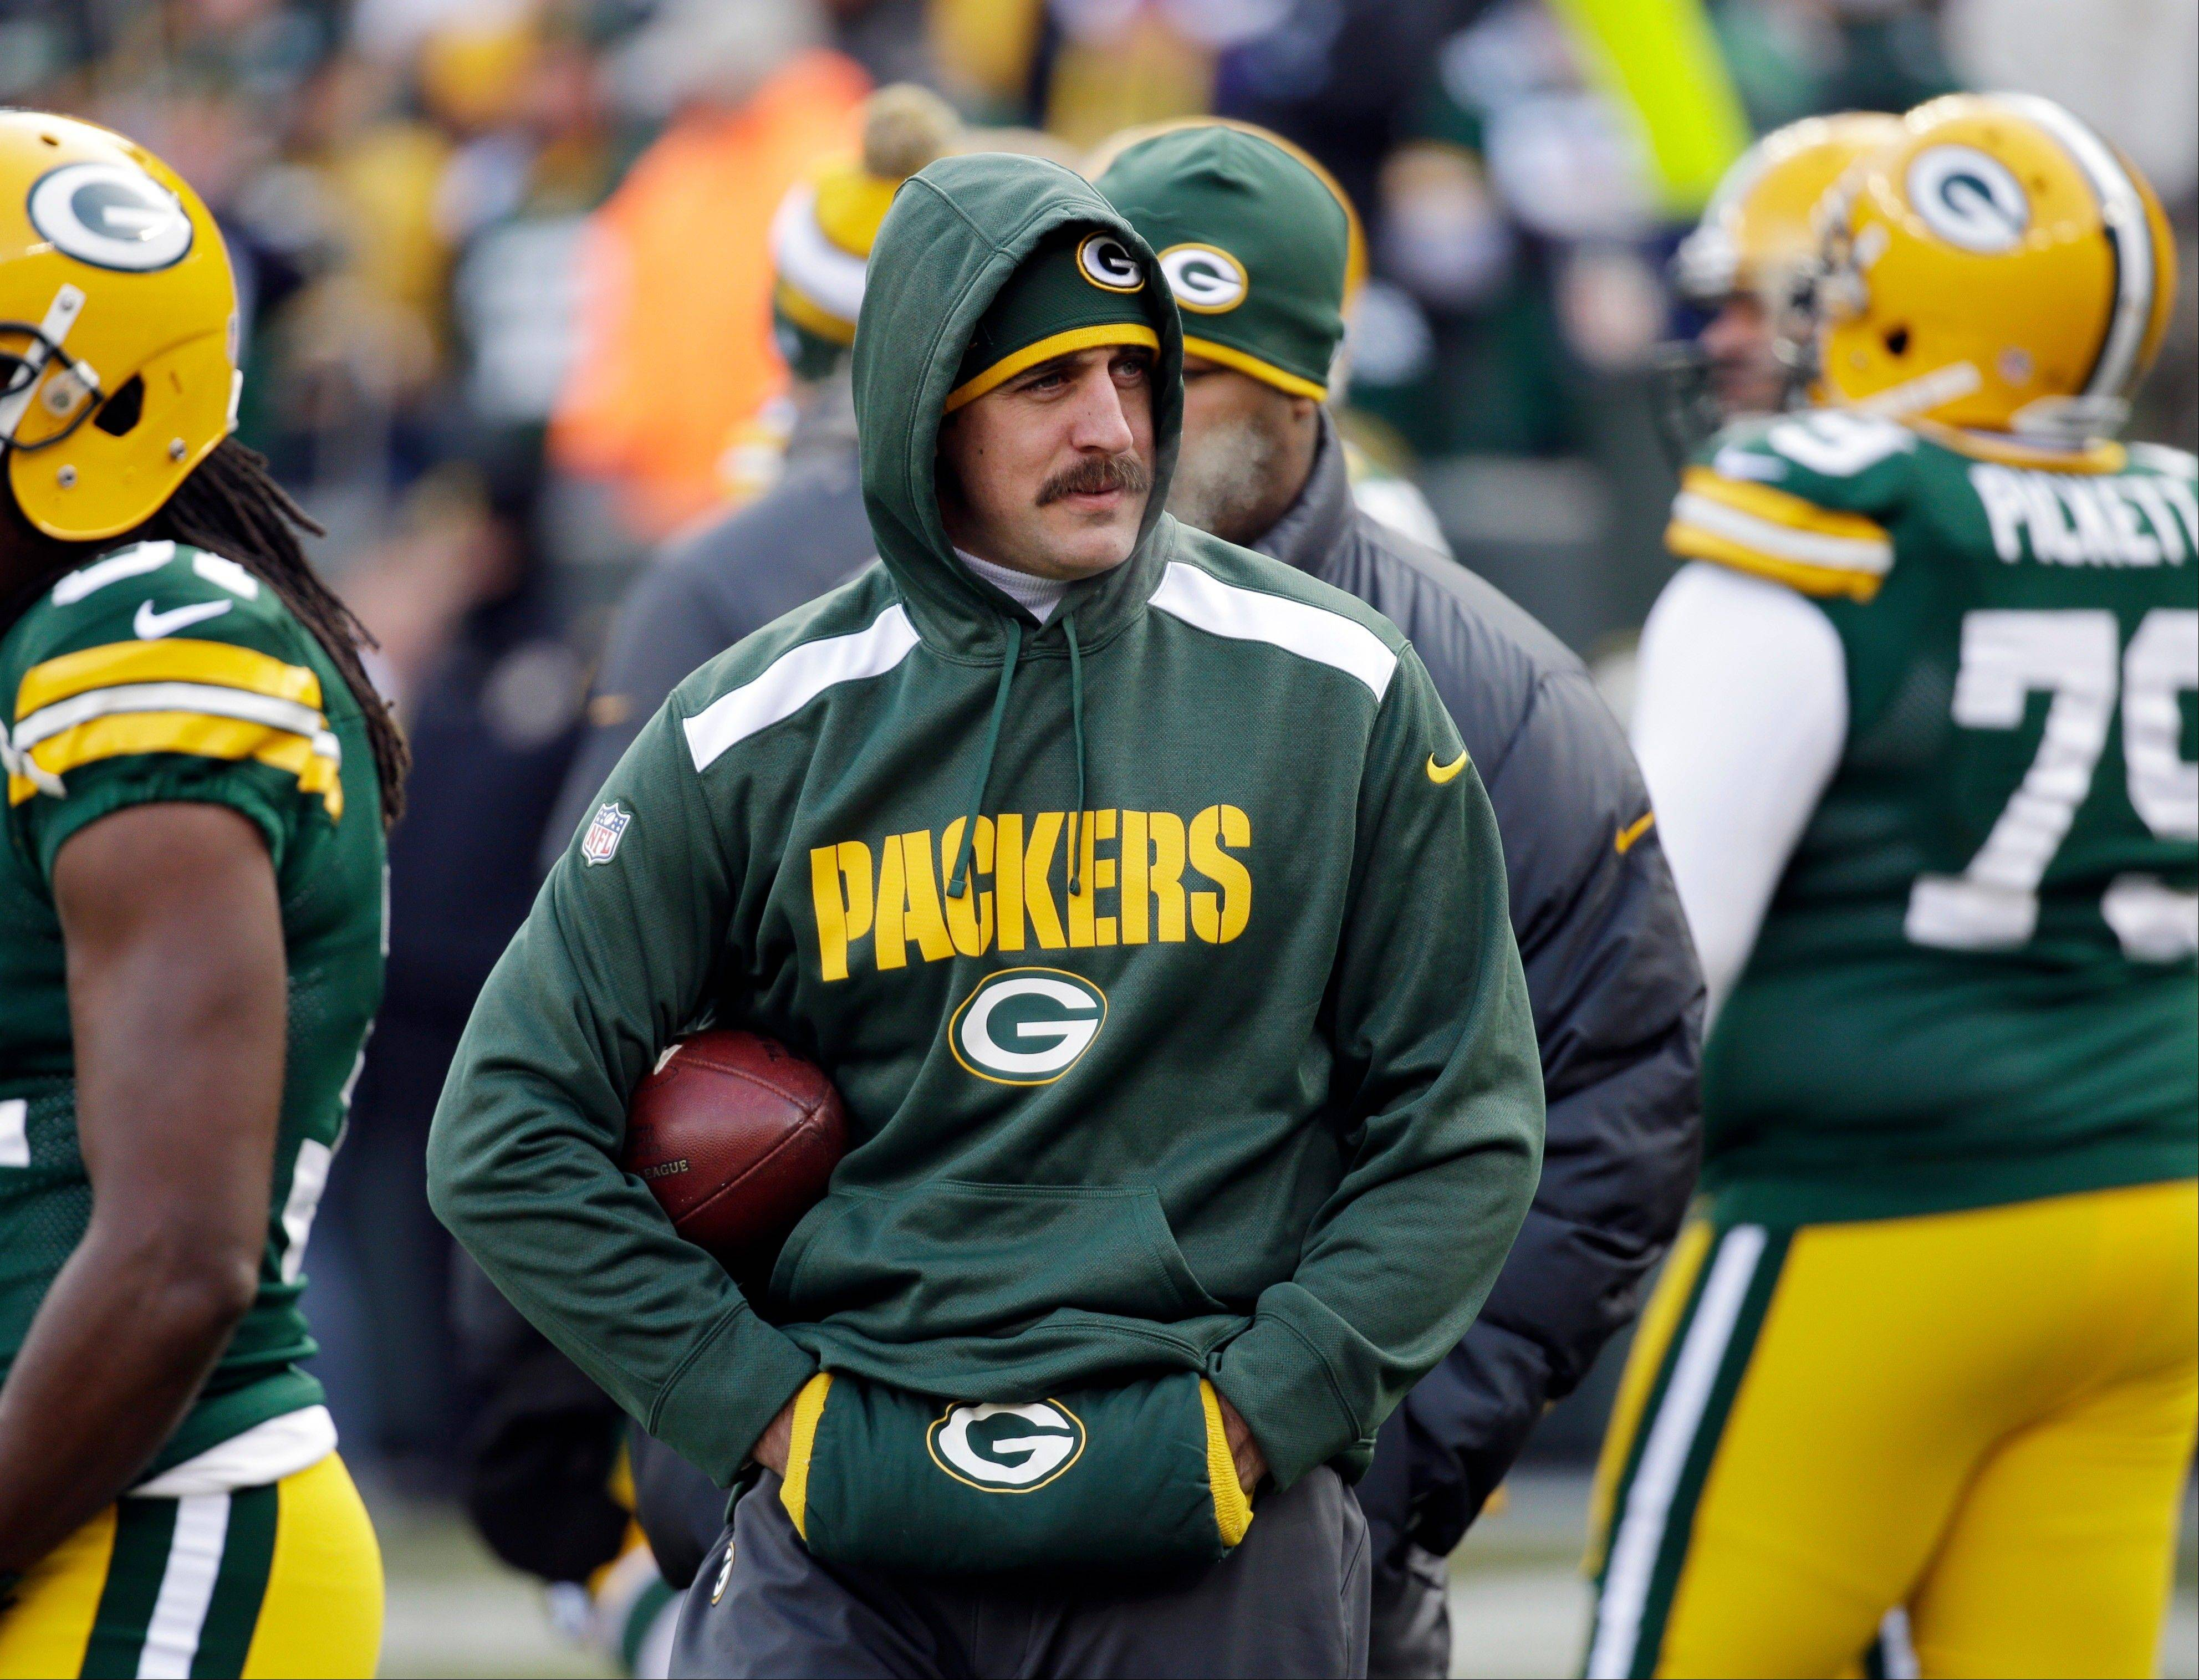 Packers quarterback Aaron Rodgers is taking off the hoodie and putting on the helmet for Sunday�s NFC North matchup with the Bears.